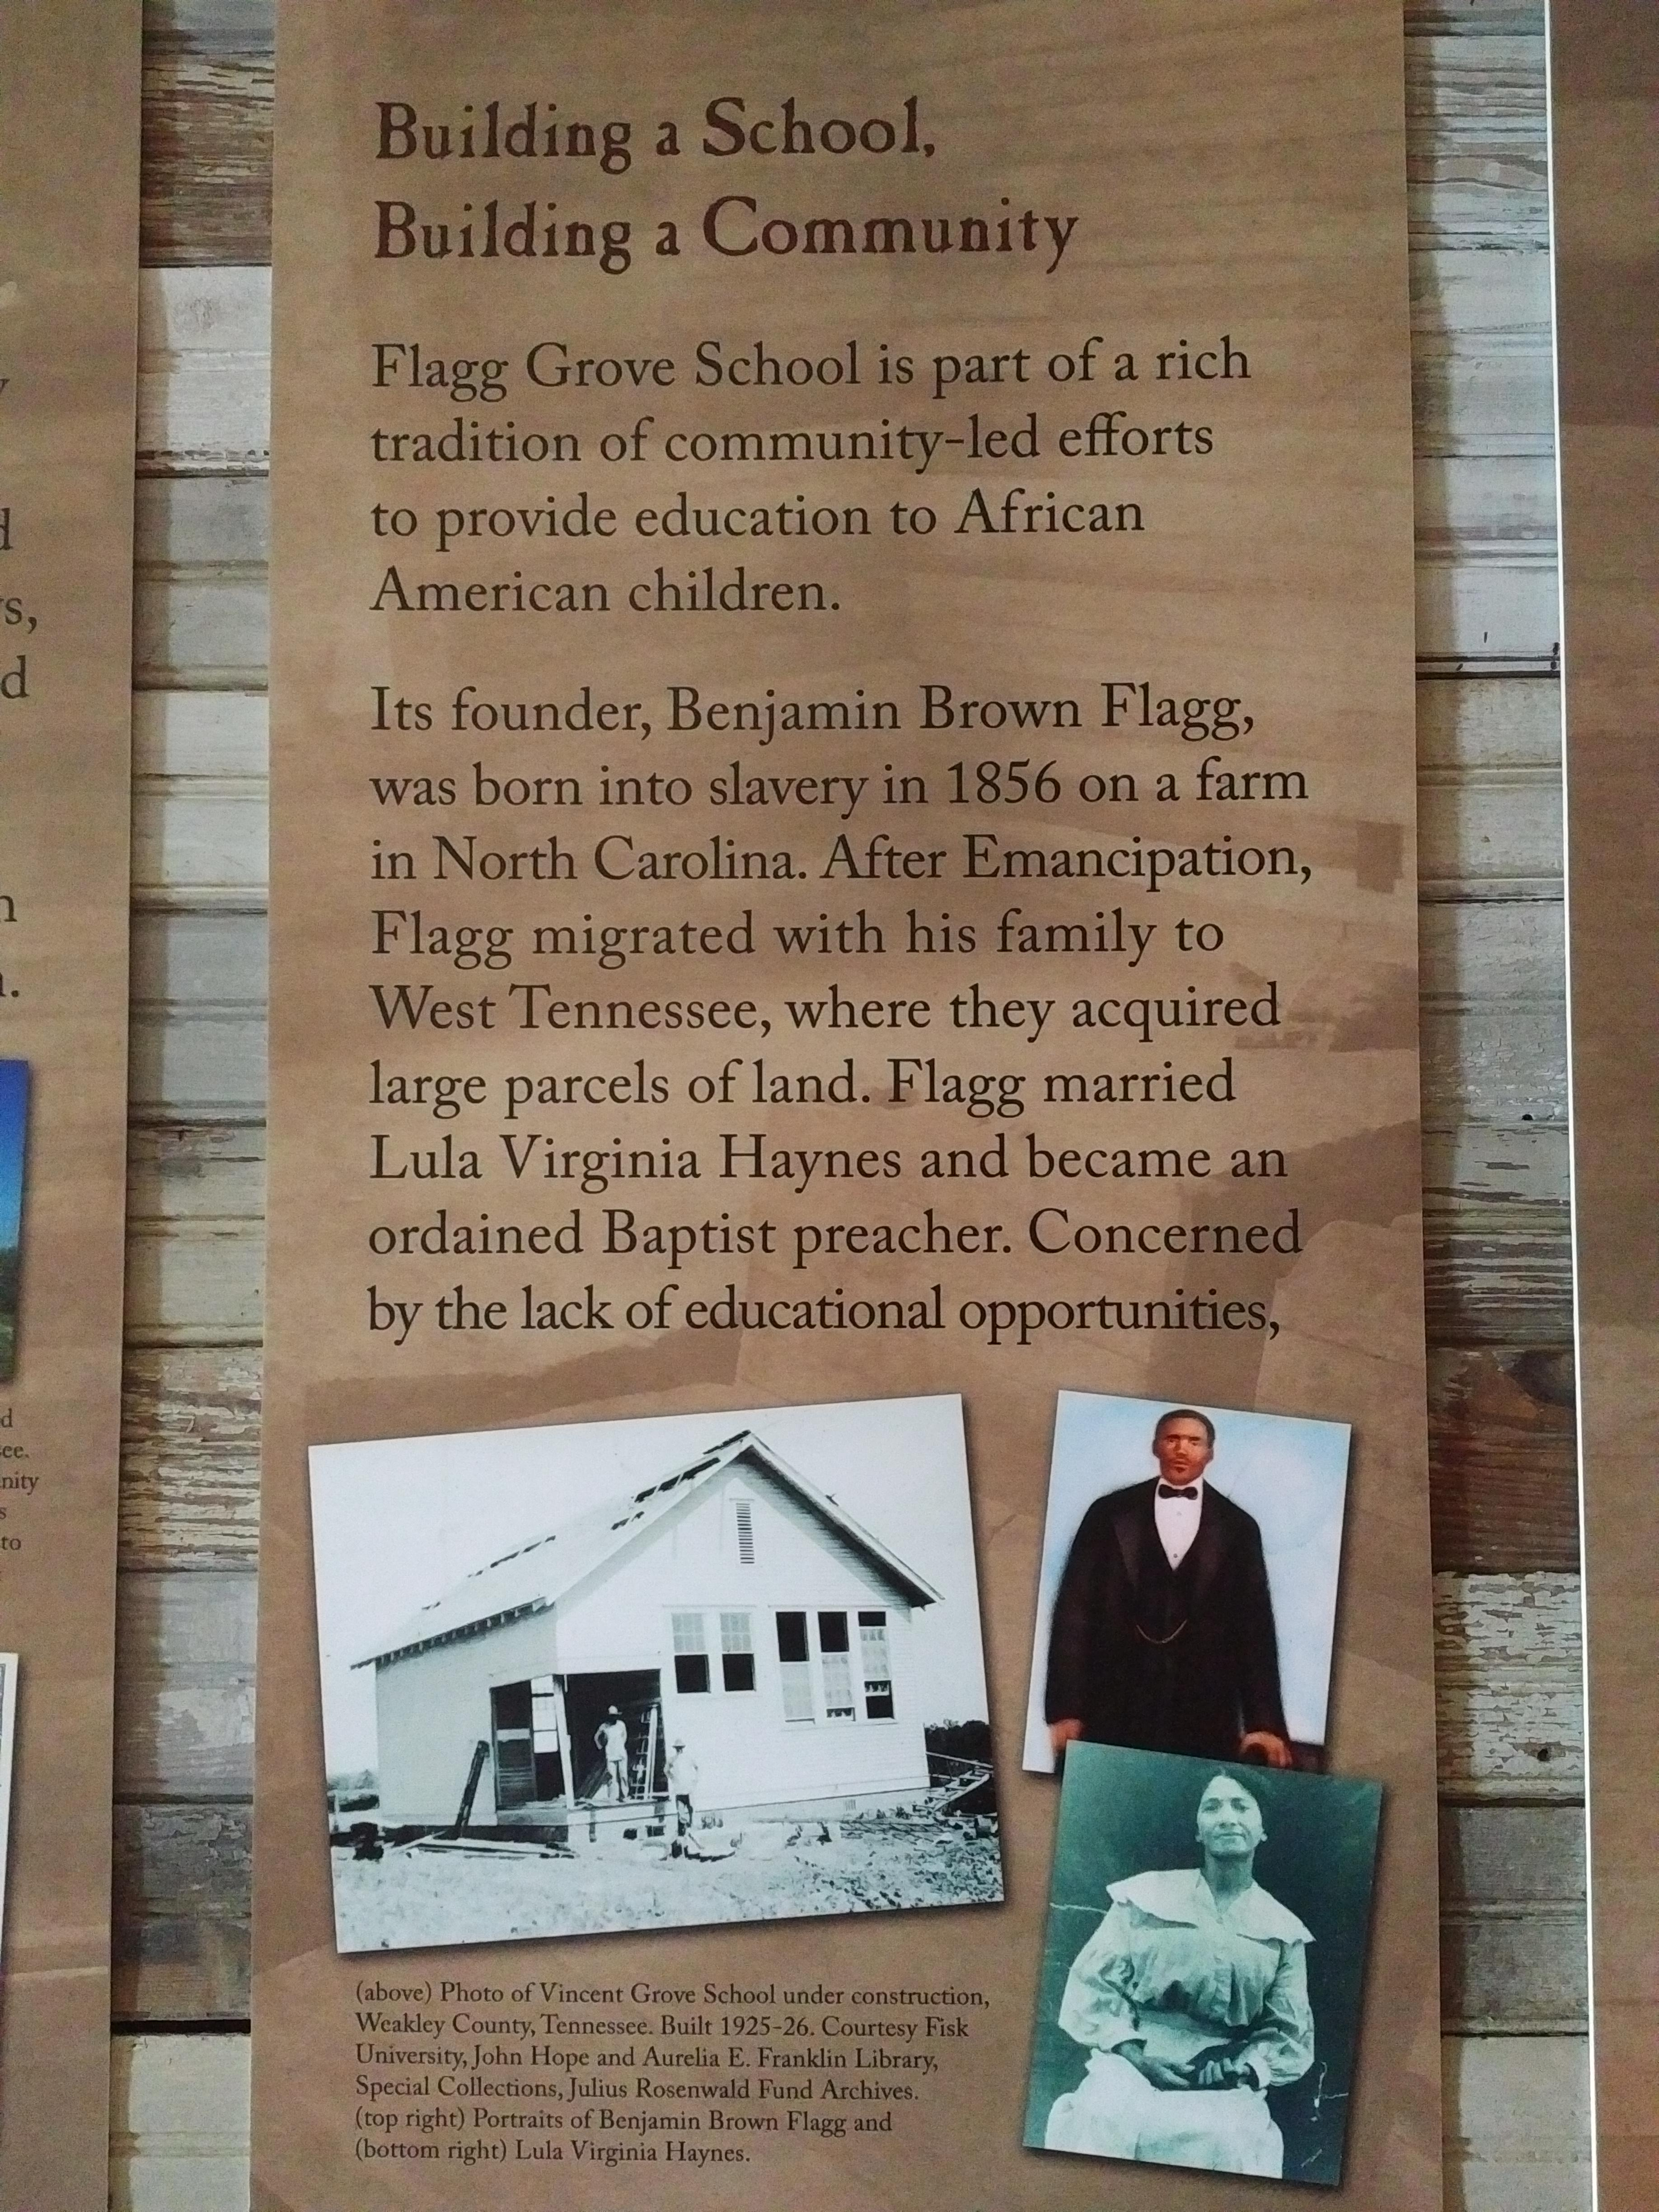 2018 TN Brownsville Delta Heritage Center - Tina Turner Museum schoolhouse history